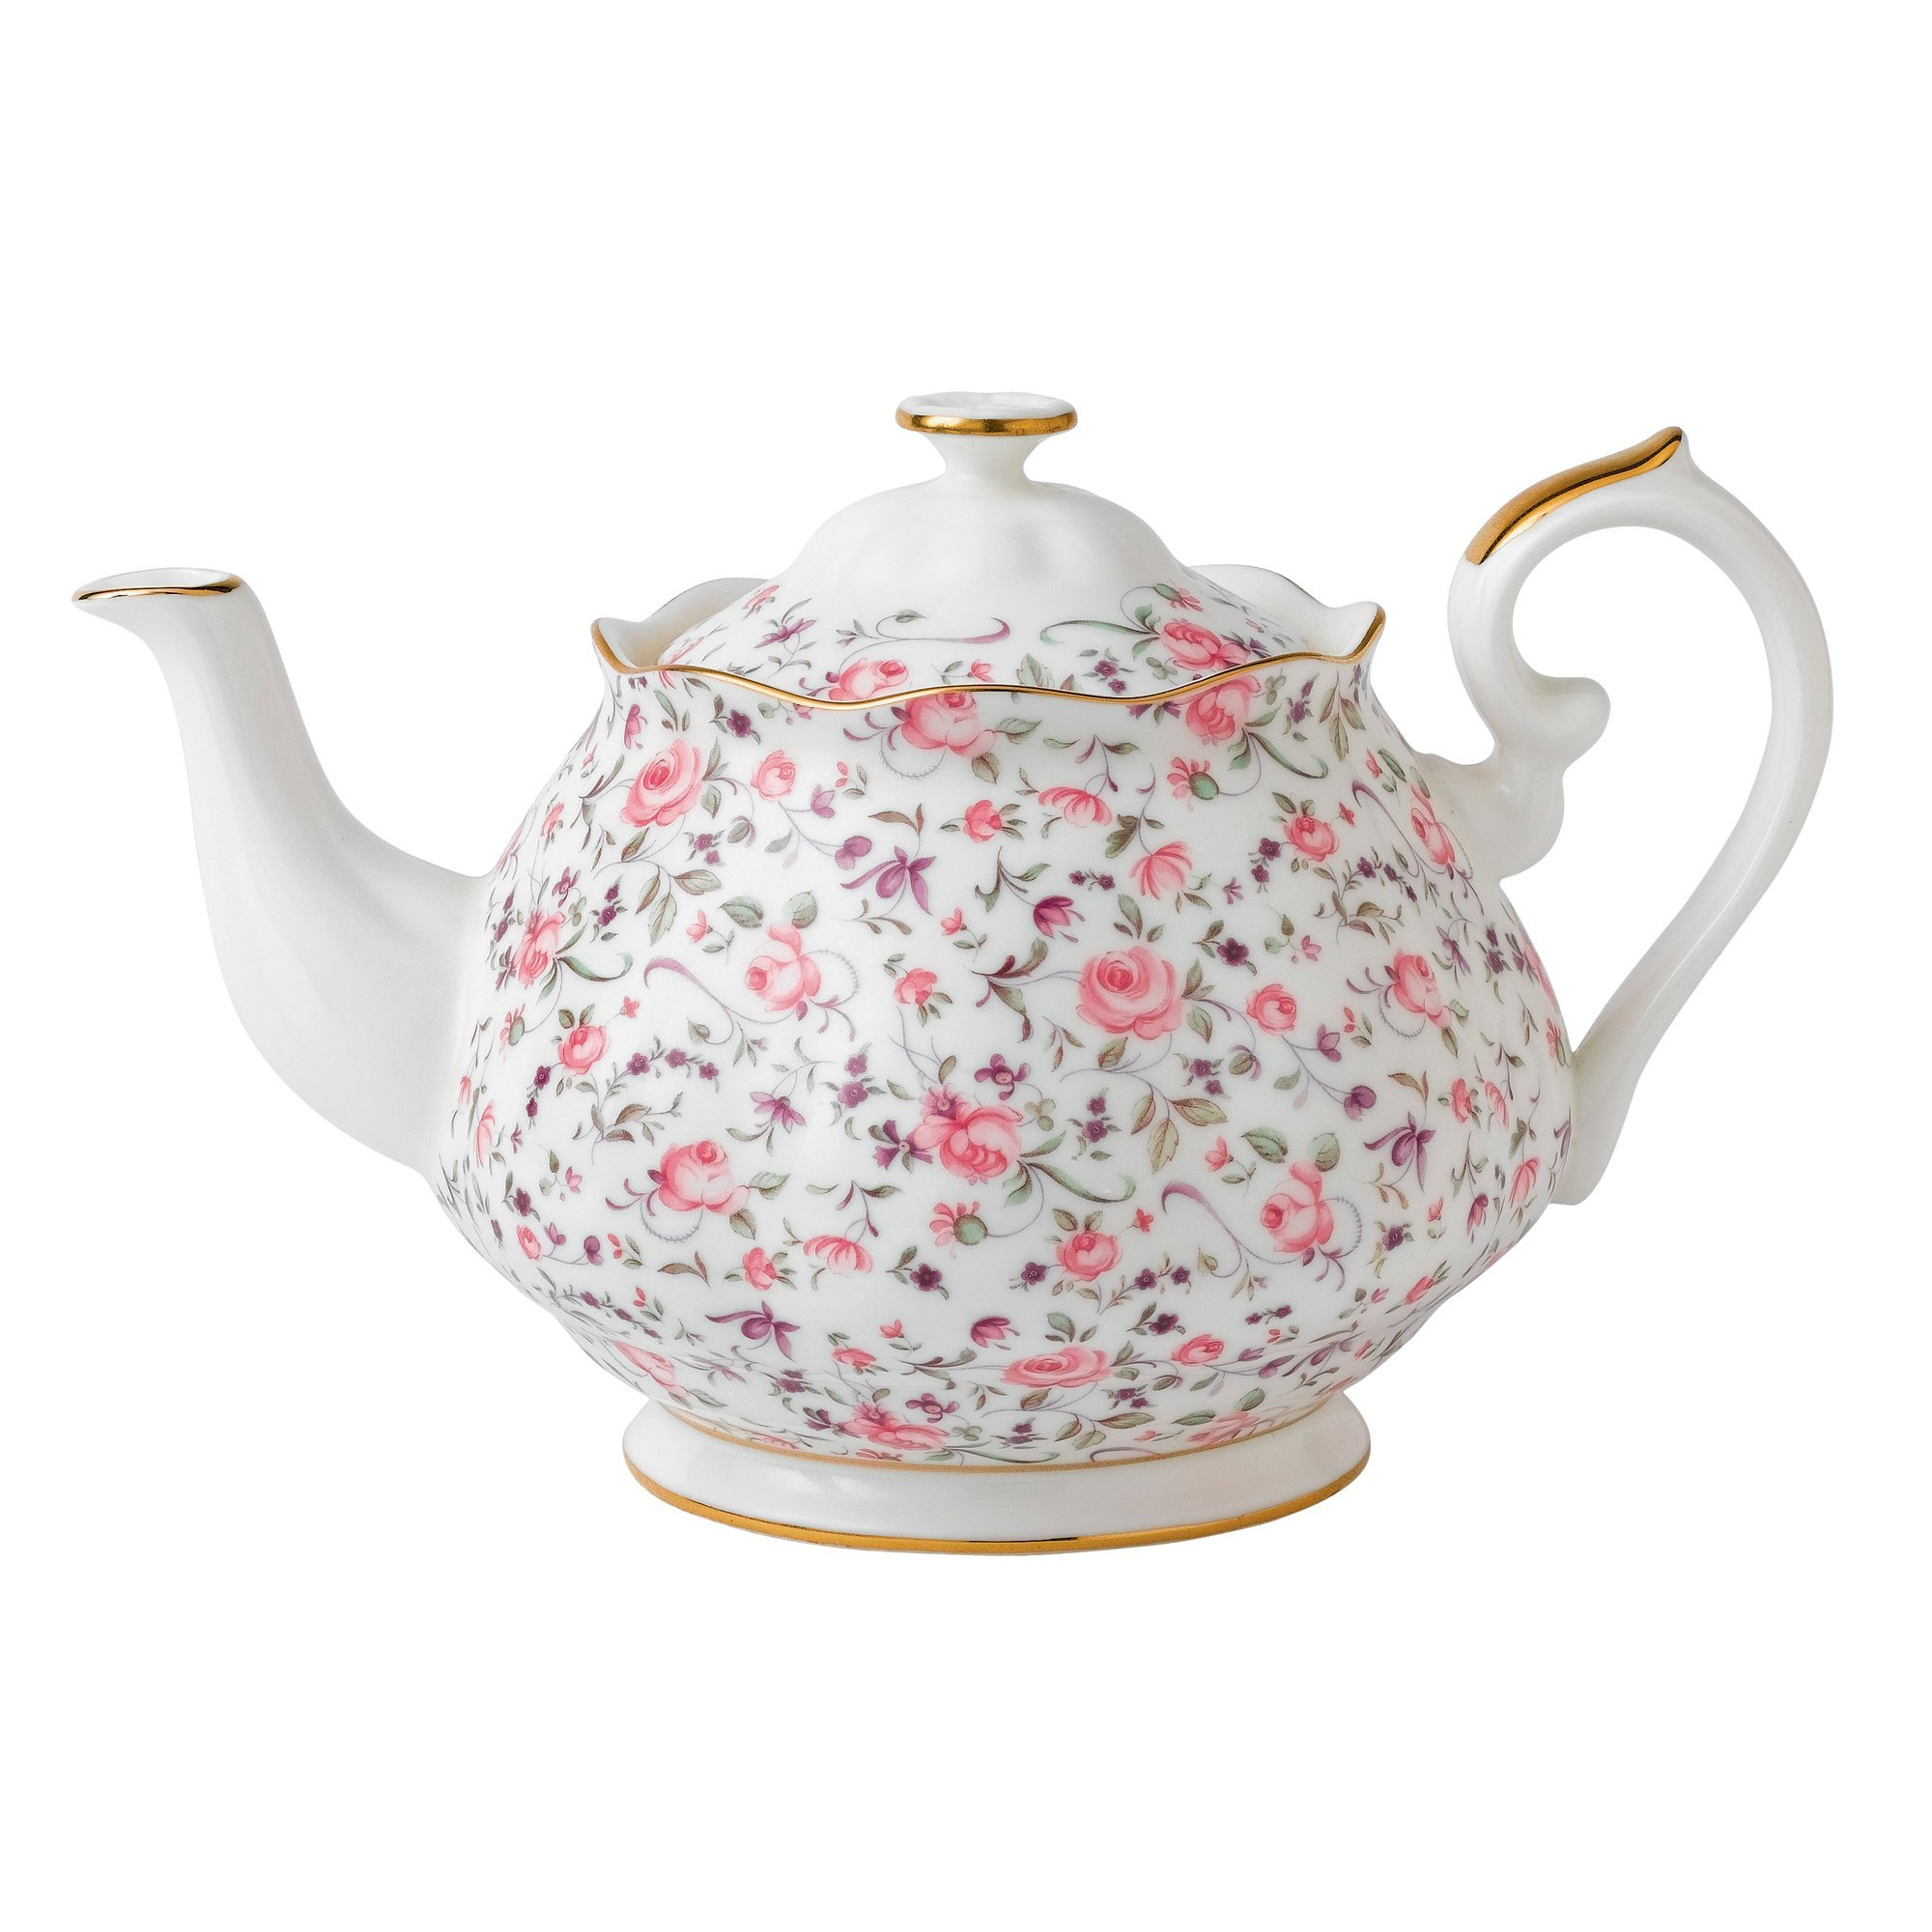 Royal Albert 8704025823 New Country Roses Rose Confetti Teaset, 3-Piece by Royal Albert (Image #2)